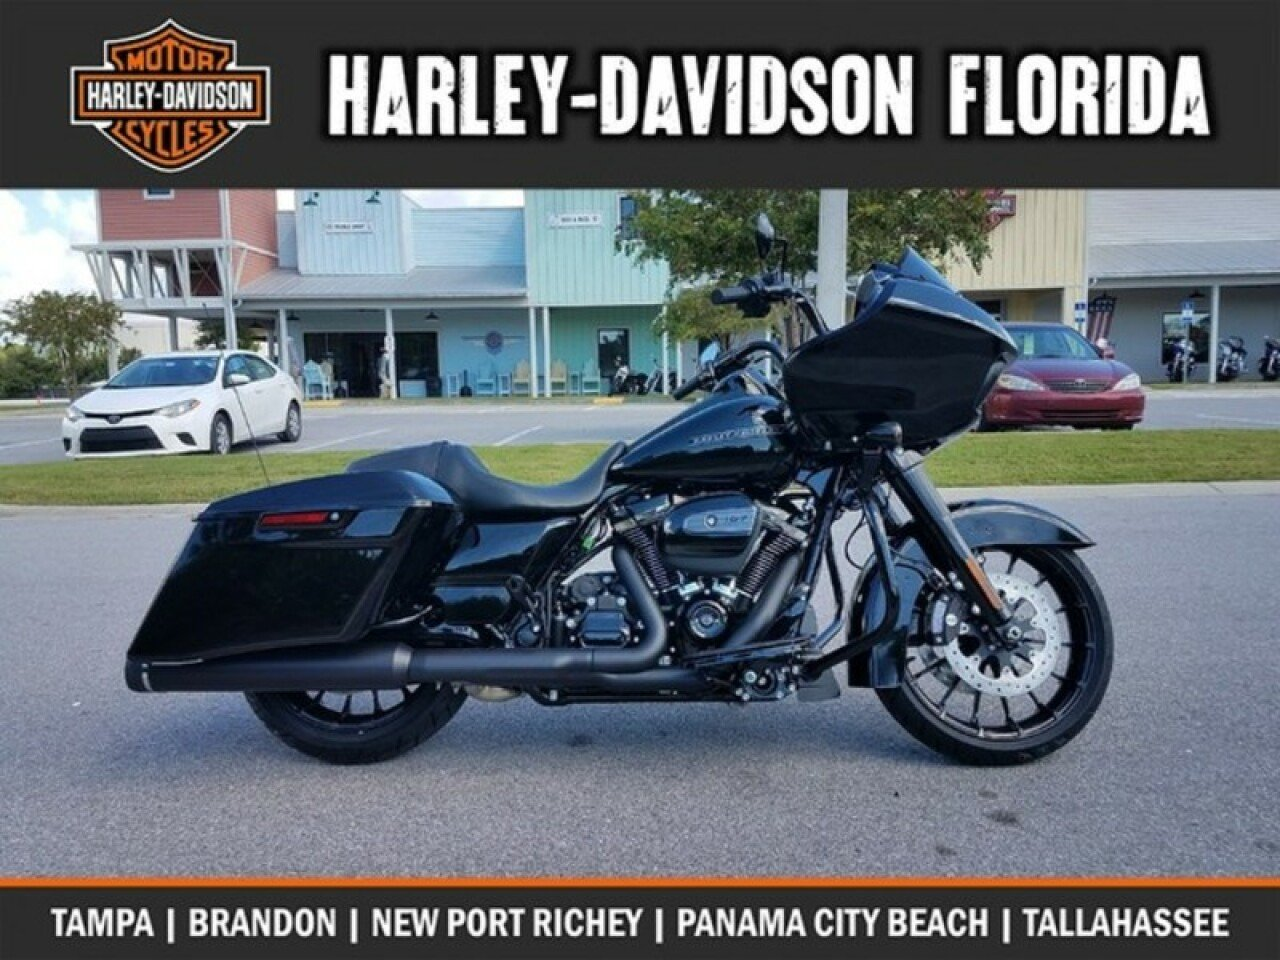 2018 harley-davidson touring road glide special for sale near panama